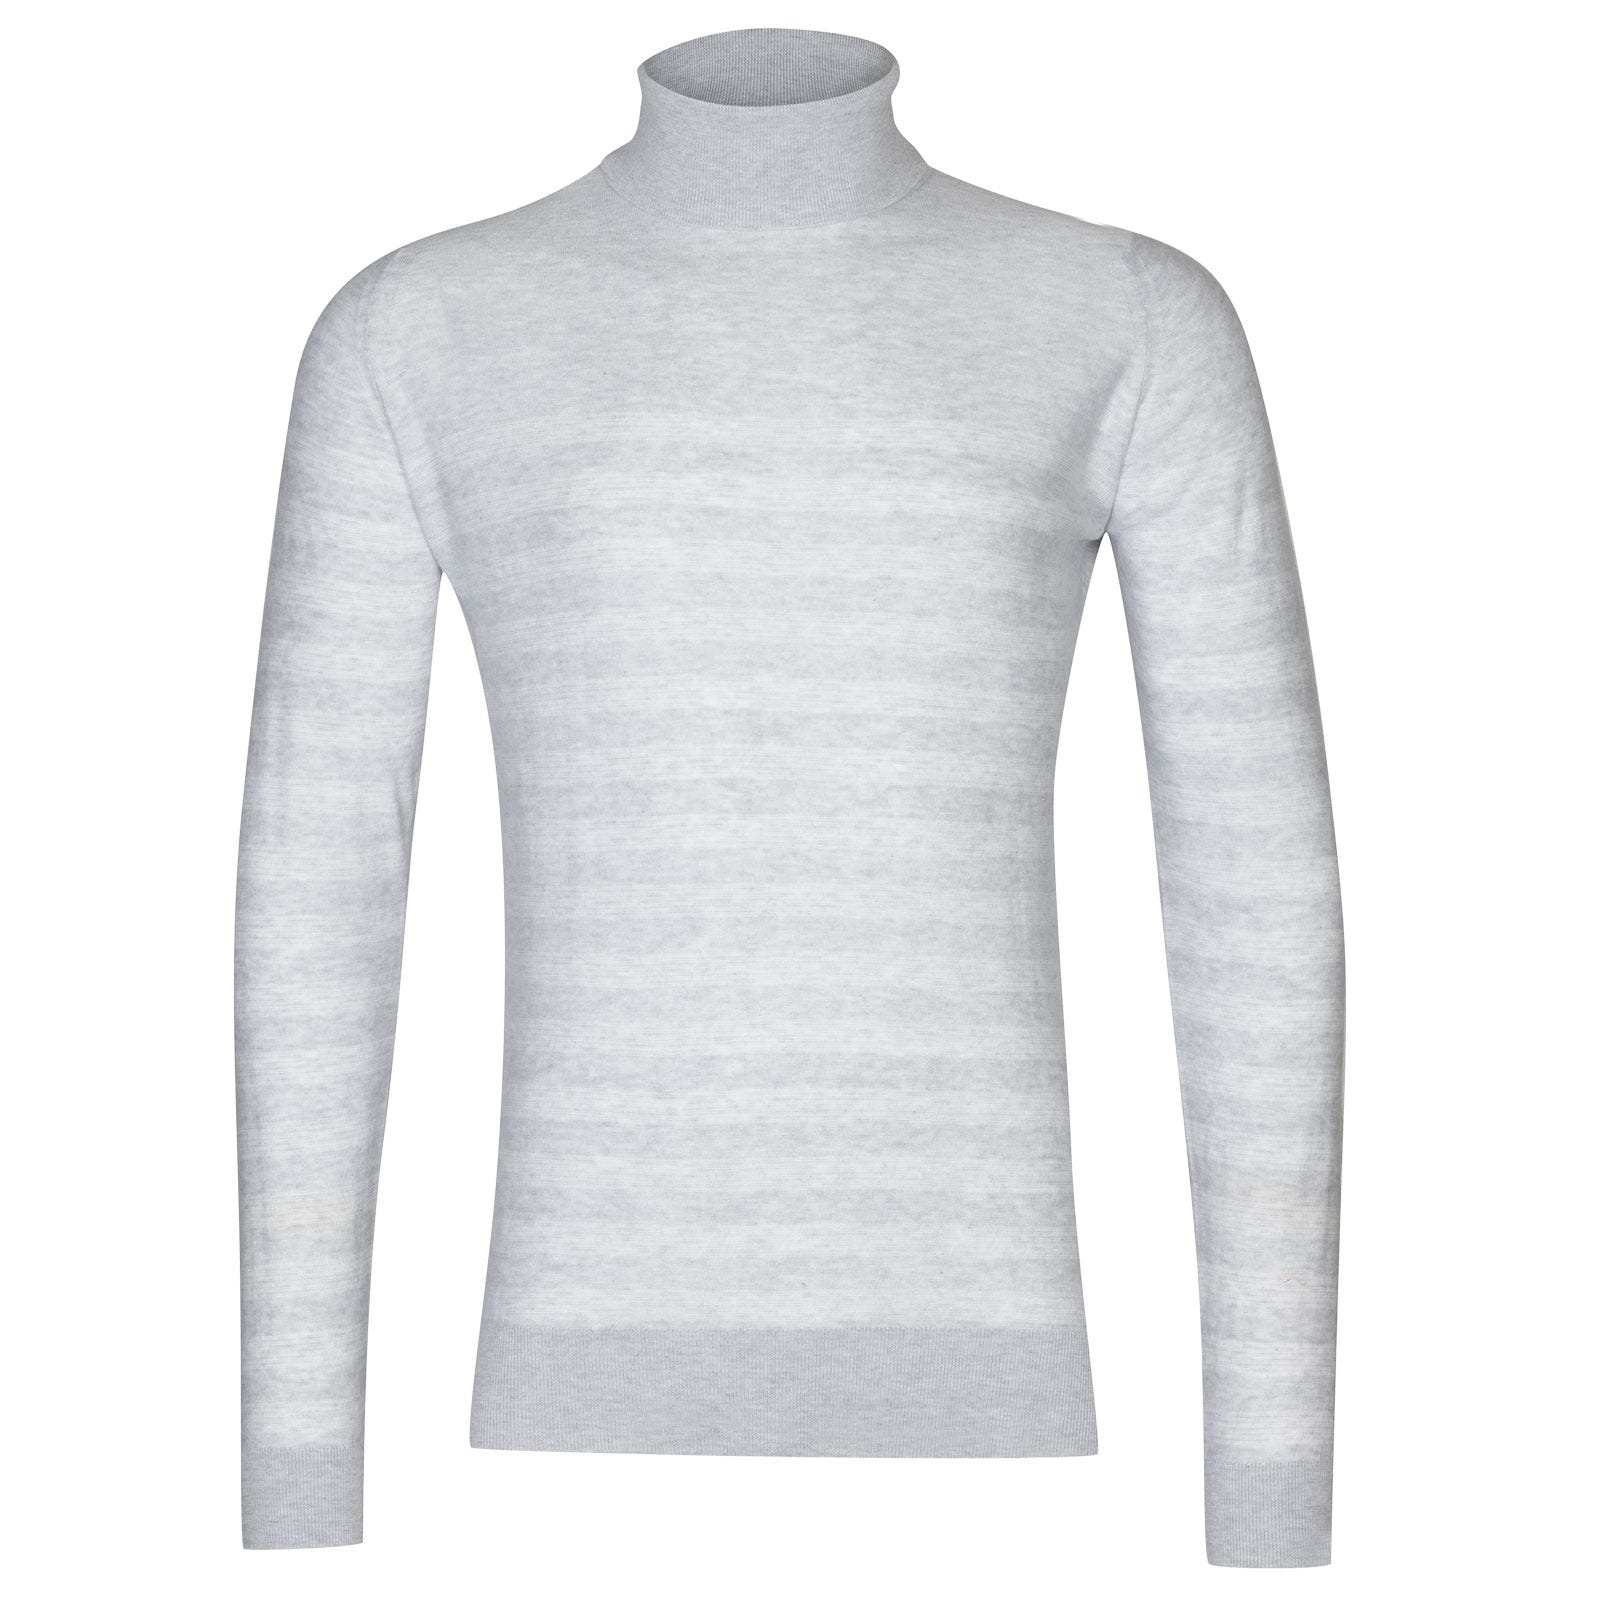 John Smedley tenby Sea Island Cotton Sweater in Feather Grey/White-XL